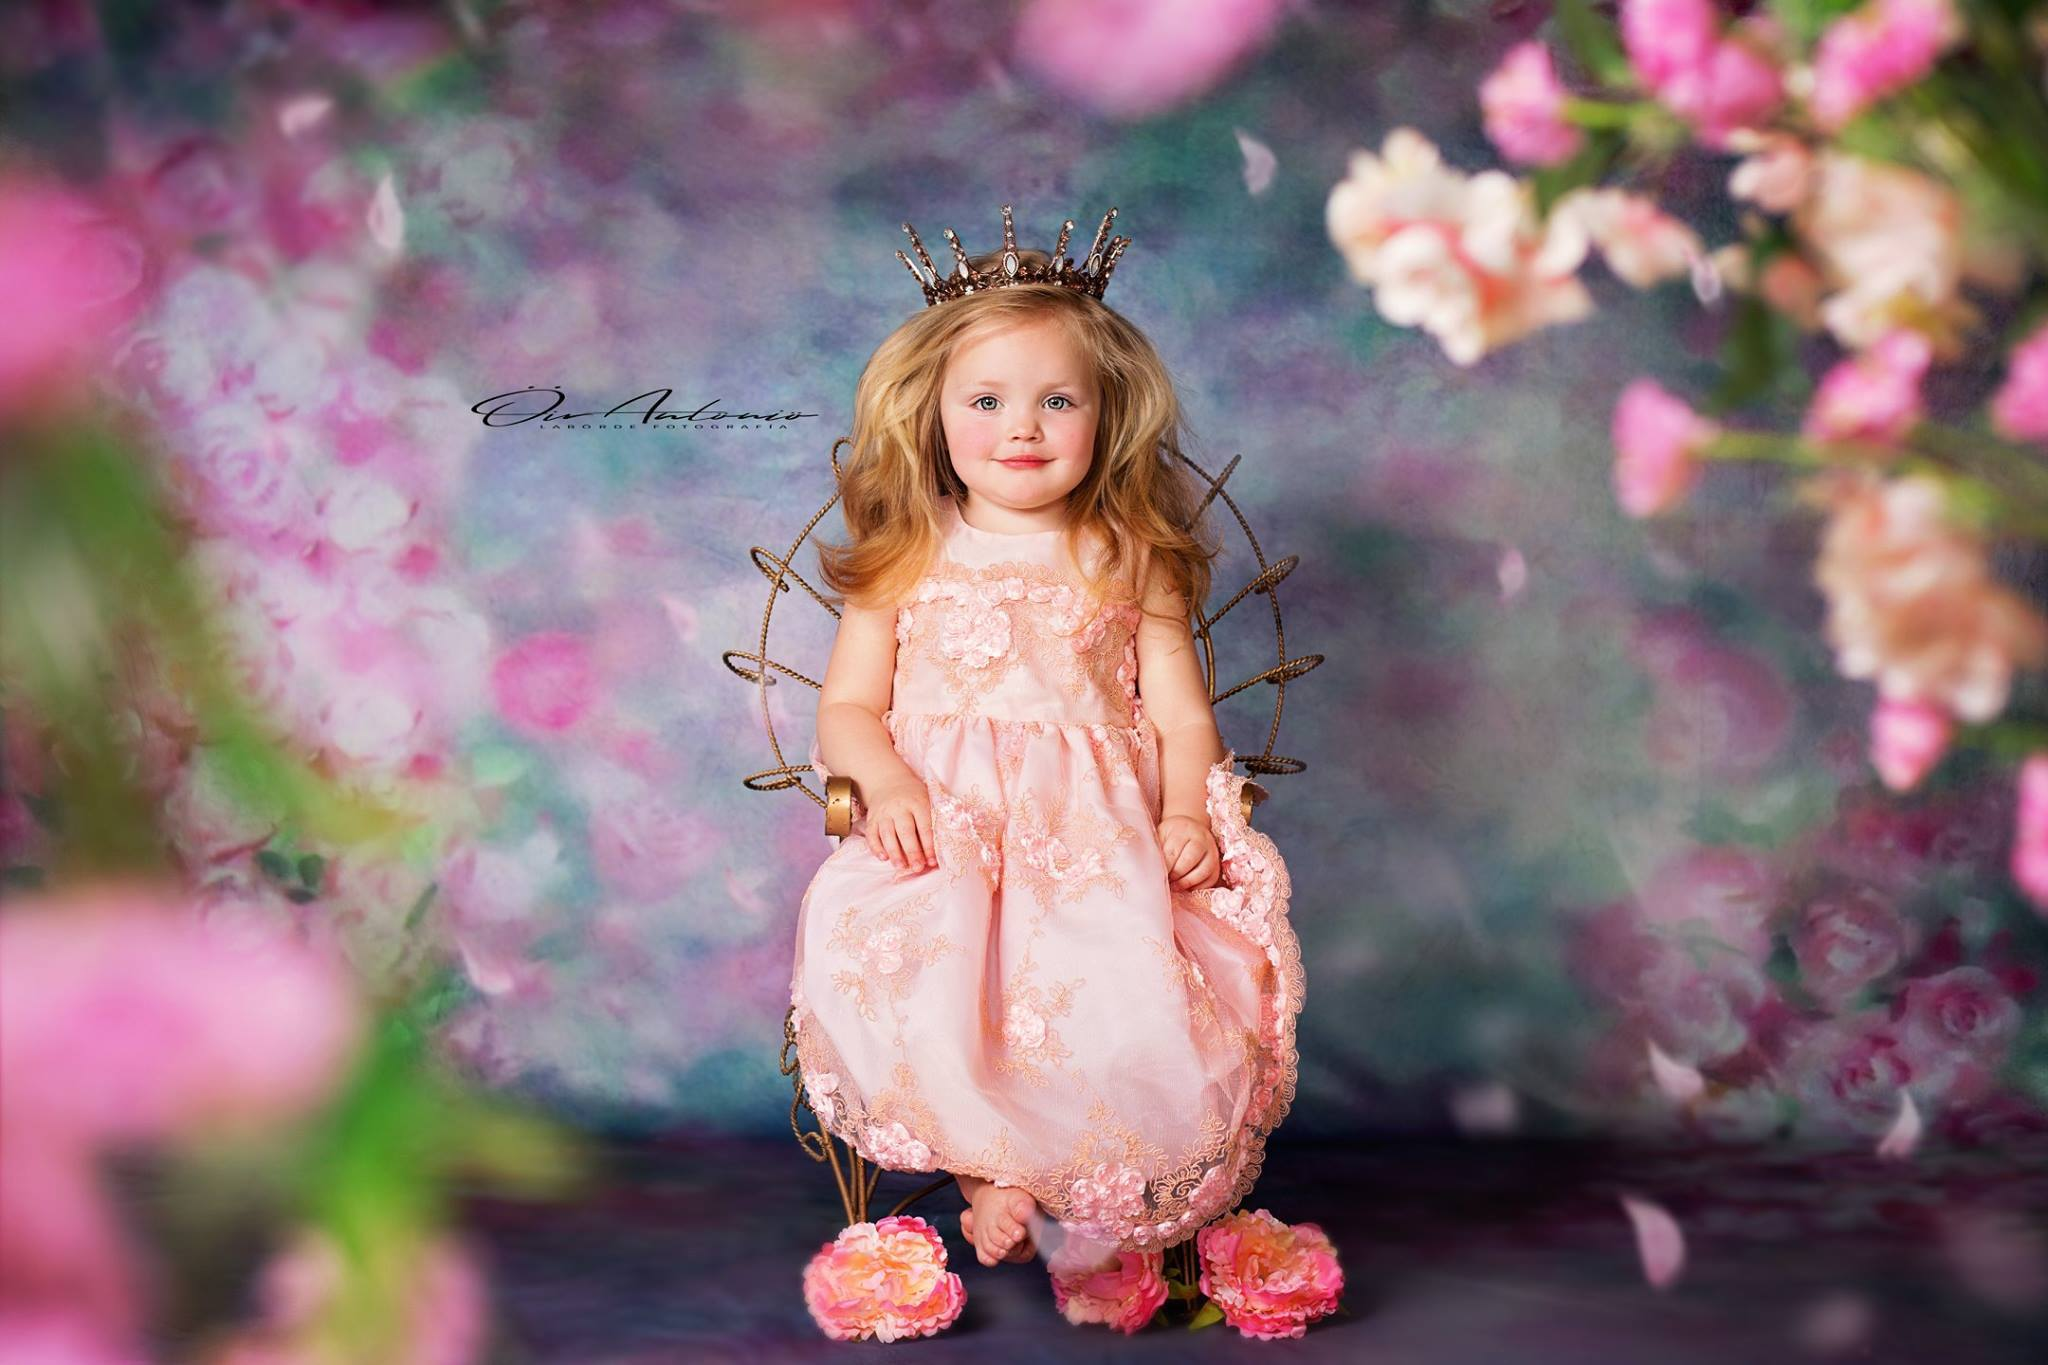 Load image into Gallery viewer, Kate Valentine's Day Pink Flowers Hand Painting Portrait Photography Backdrops US